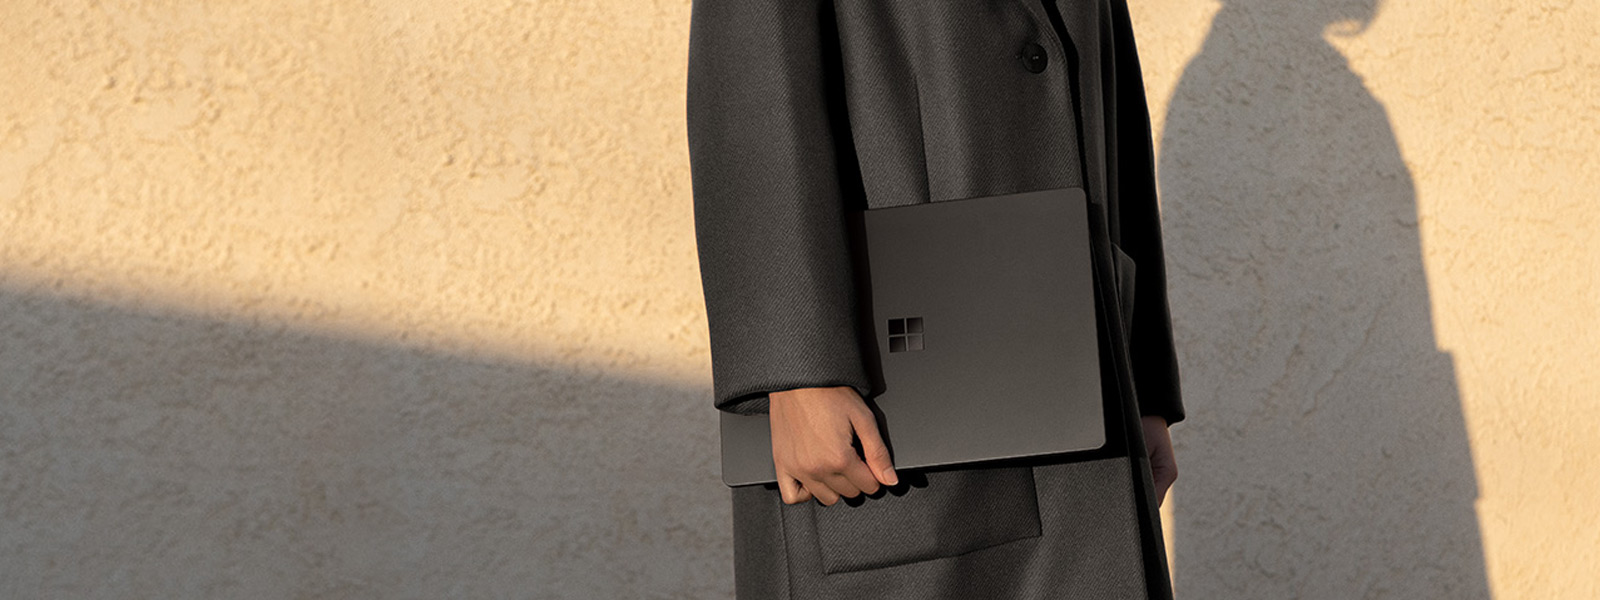 En person med svart rock som håller en svart Surface Laptop 2 vid sin sida